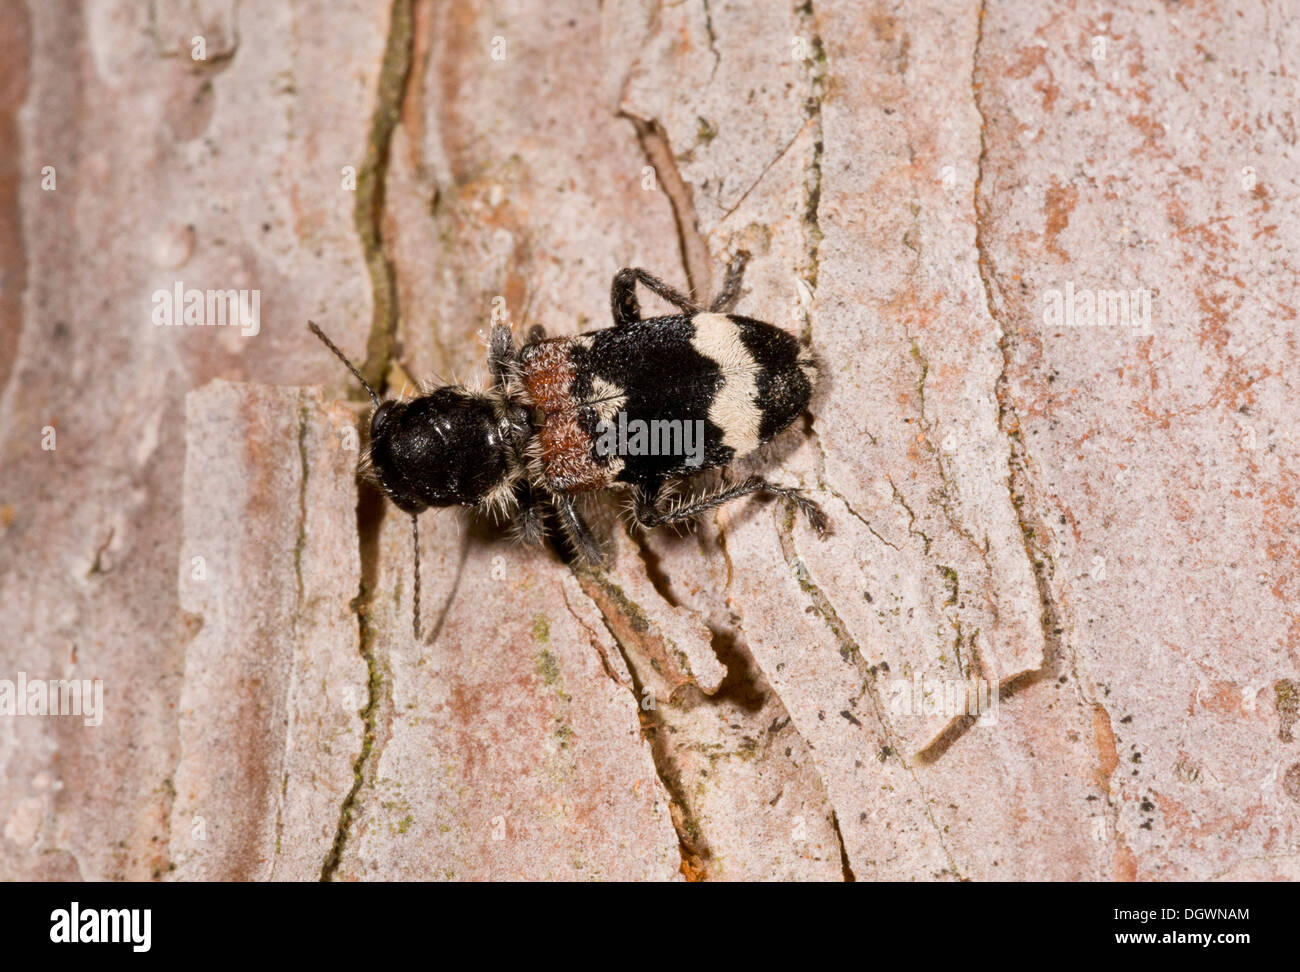 Chequered Beetle, Clerus mutillarius on old trunk; feeds on larvae of other beetles. France - Stock Image